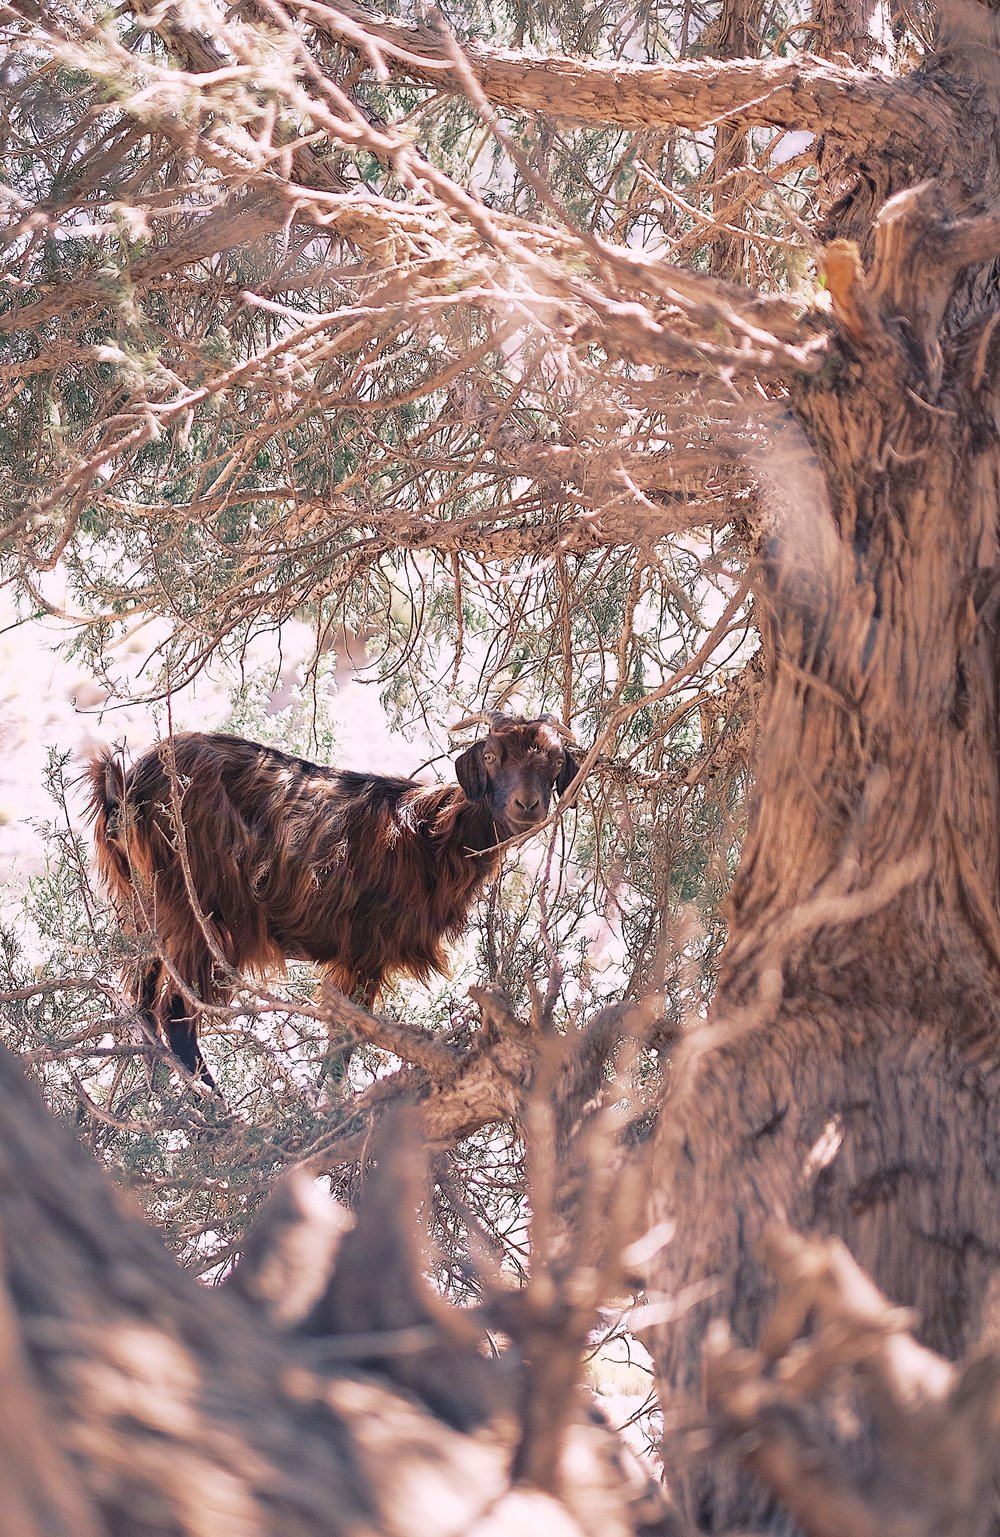 atlas mountains goat in a tree by luis cardenas.jpg